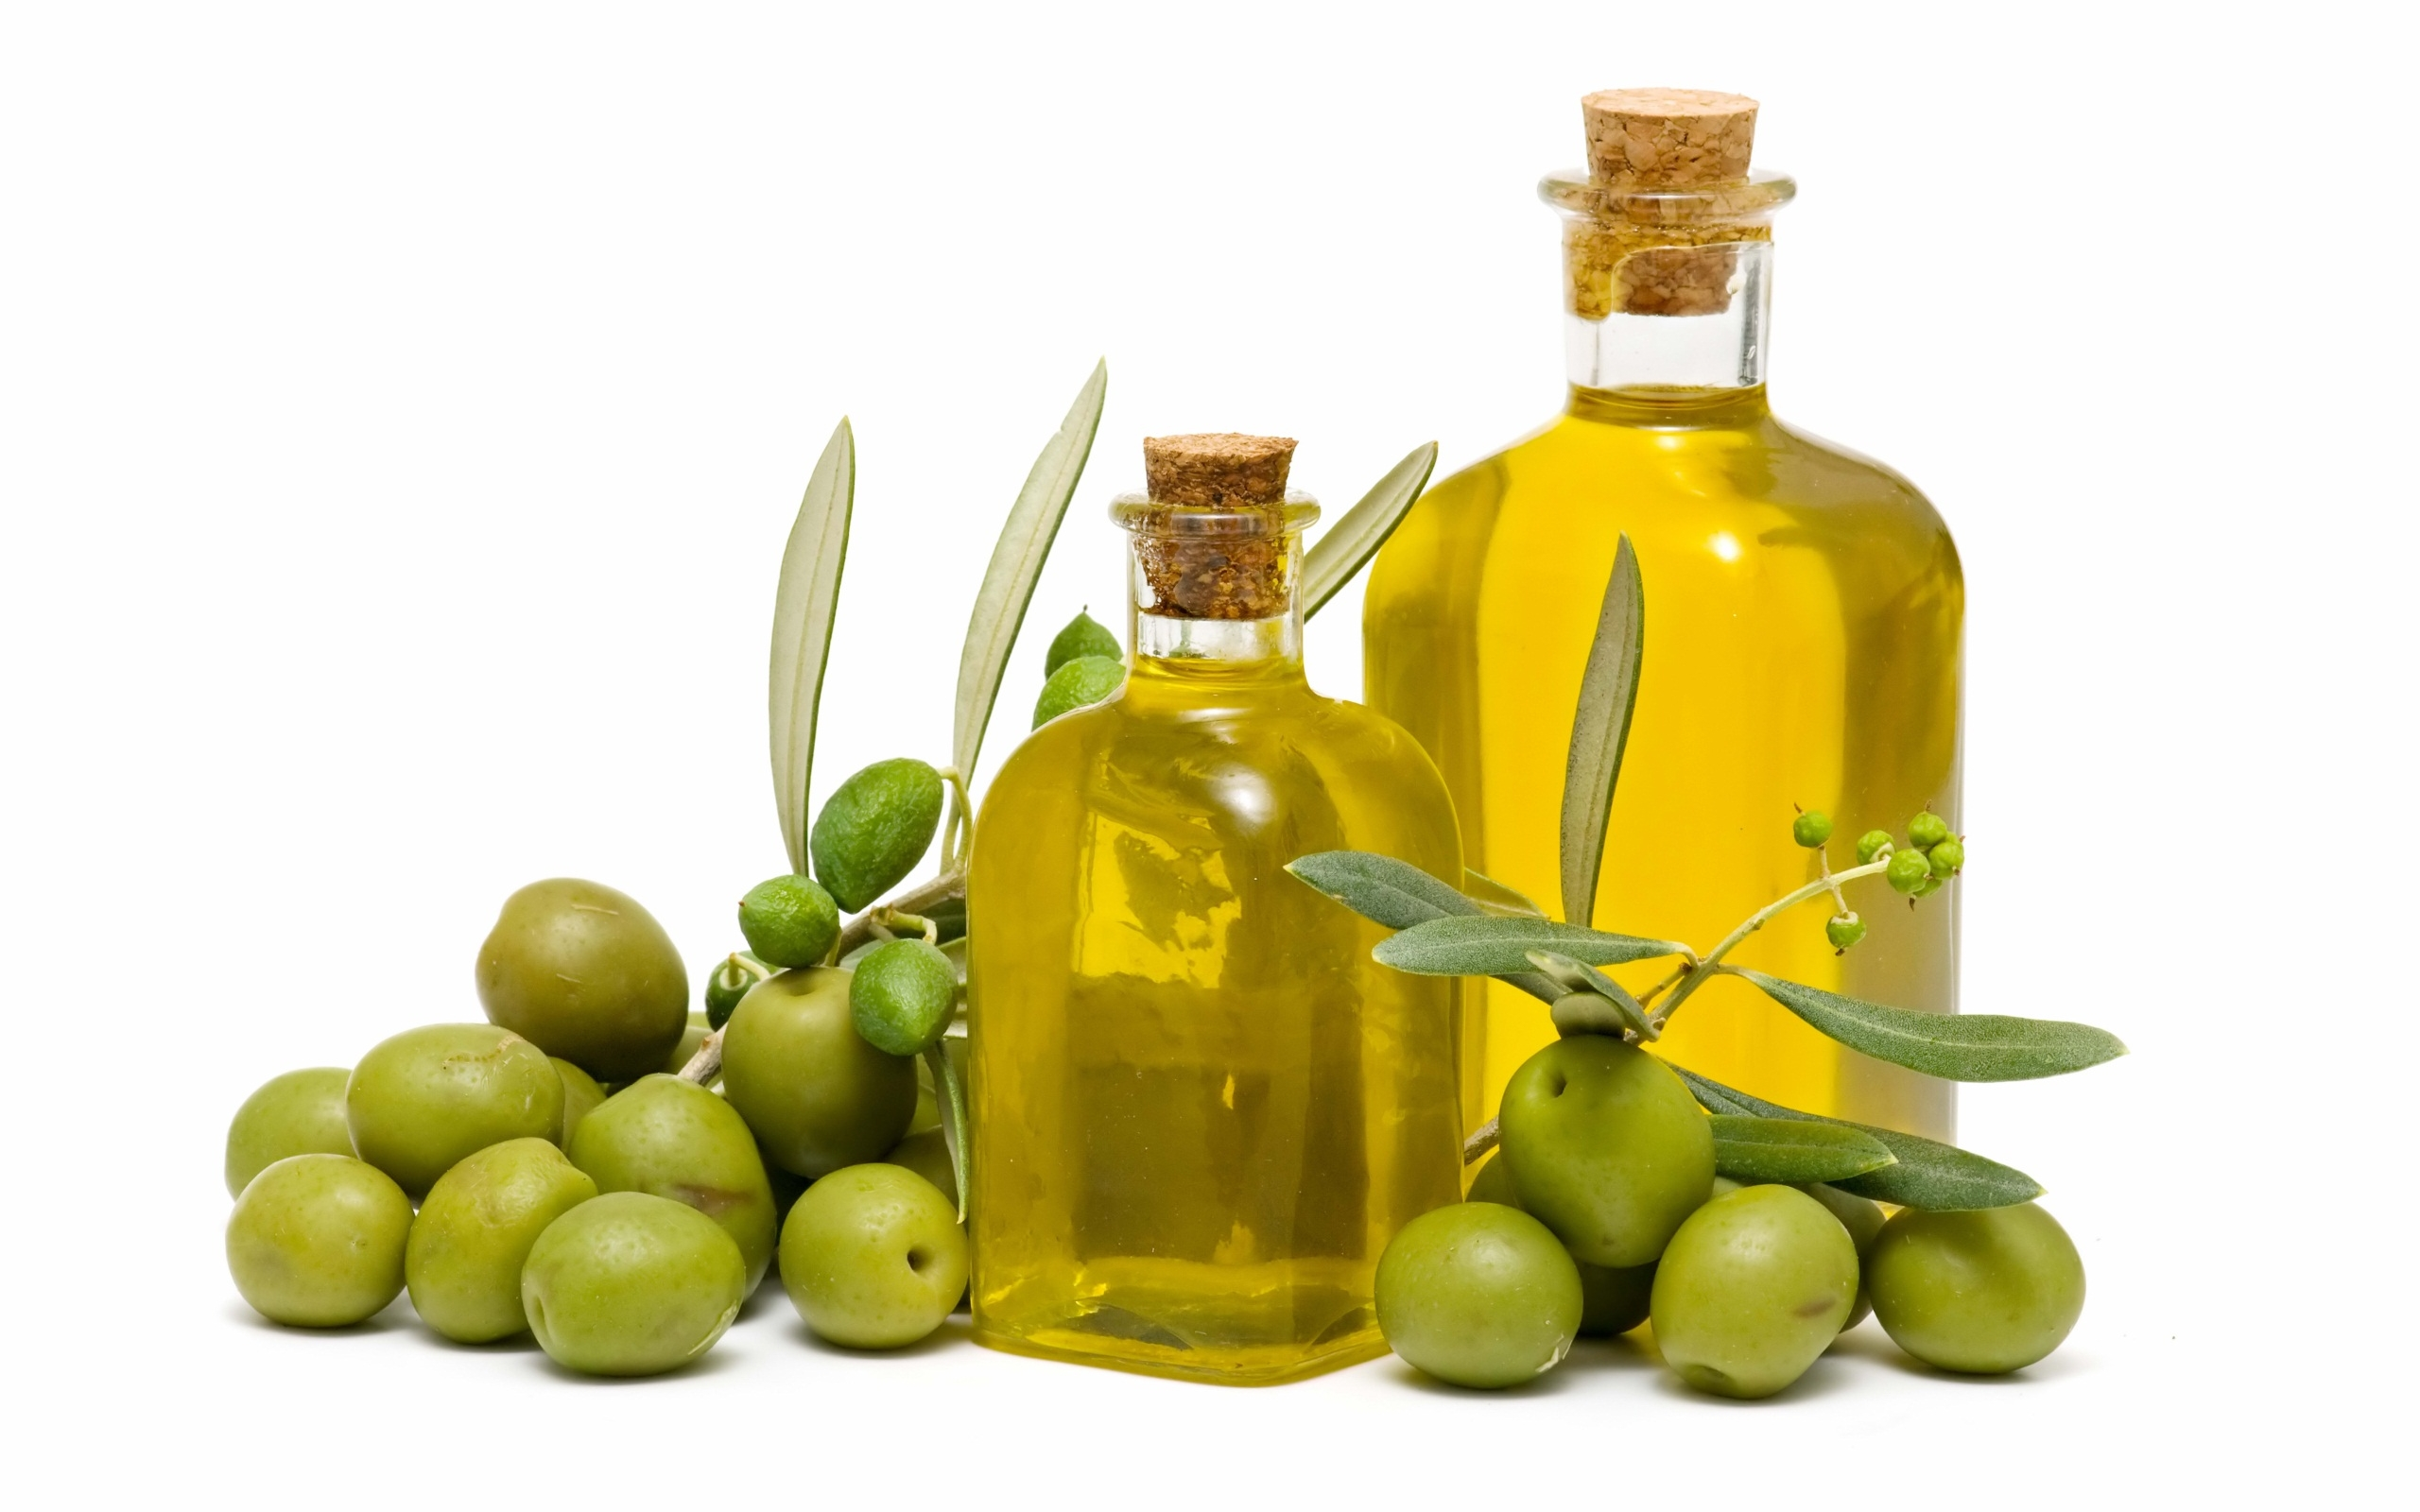 Olive Oil - Buy The Right Type For Your Family!